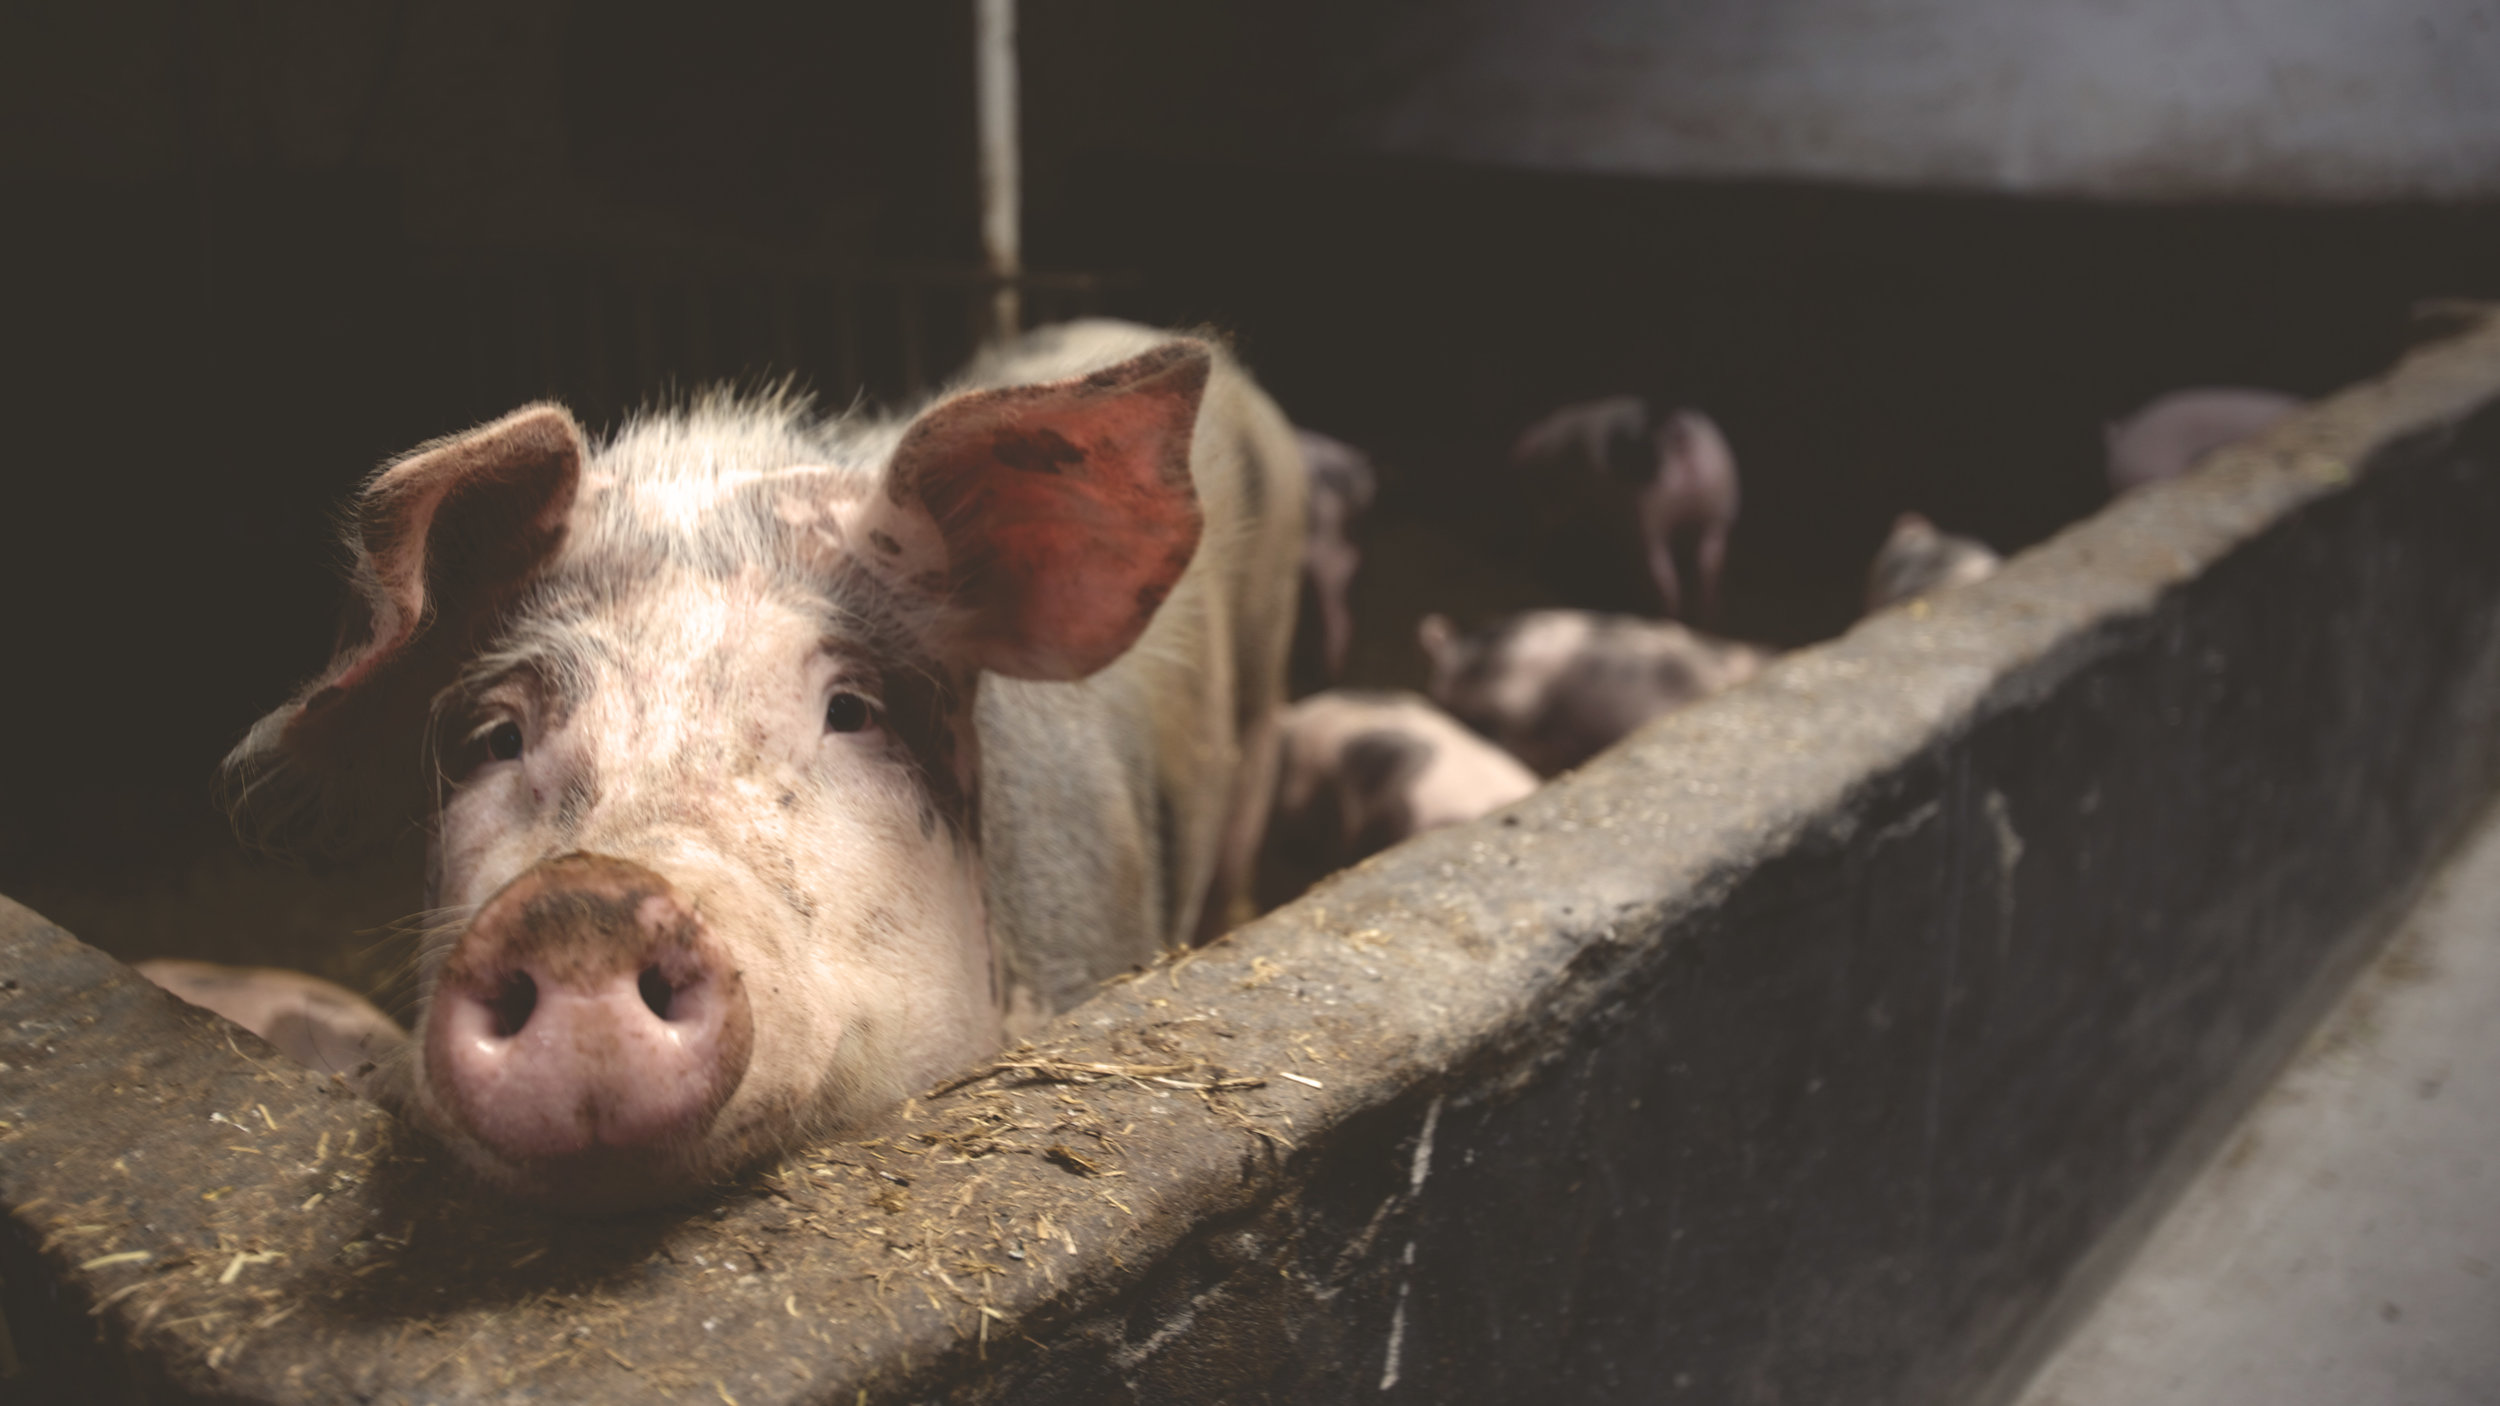 About 99 percent of the meat Americans eat comes from factory farms, where pigs typically live in pens so small they can barely turn around.